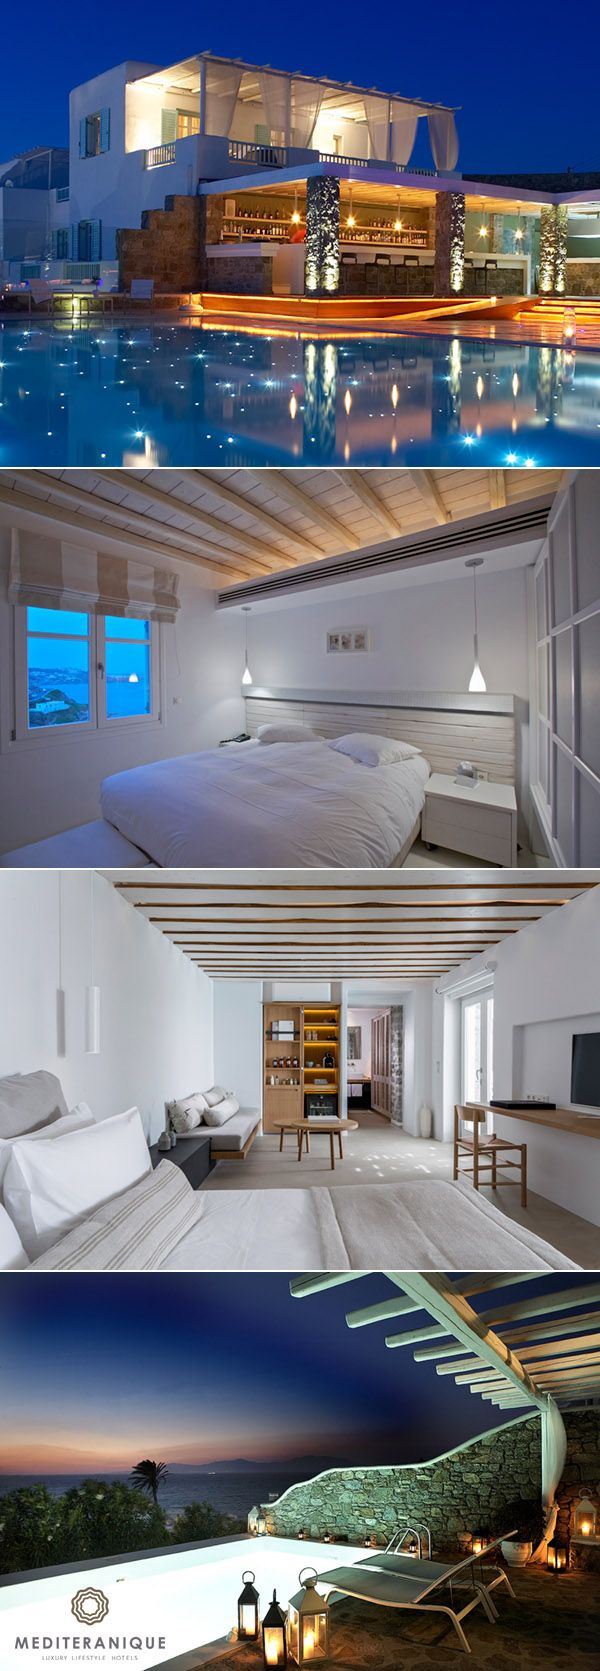 Bill & Coo Suites and Lounge, a luxury hotel in Mykonos